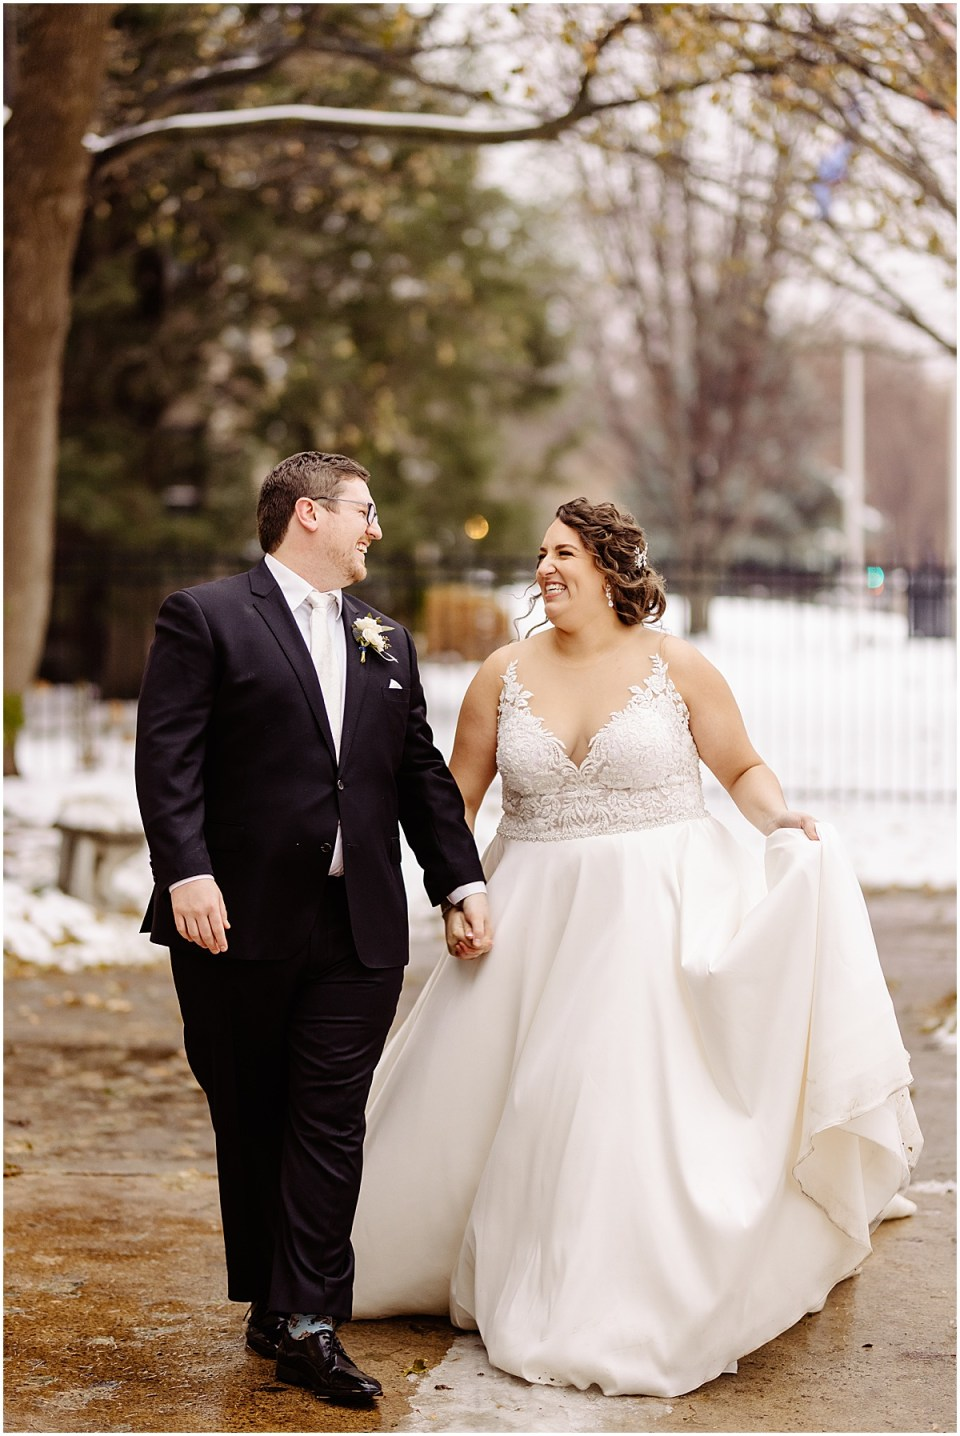 Outdoor wedding portraits at St. Paul College Club